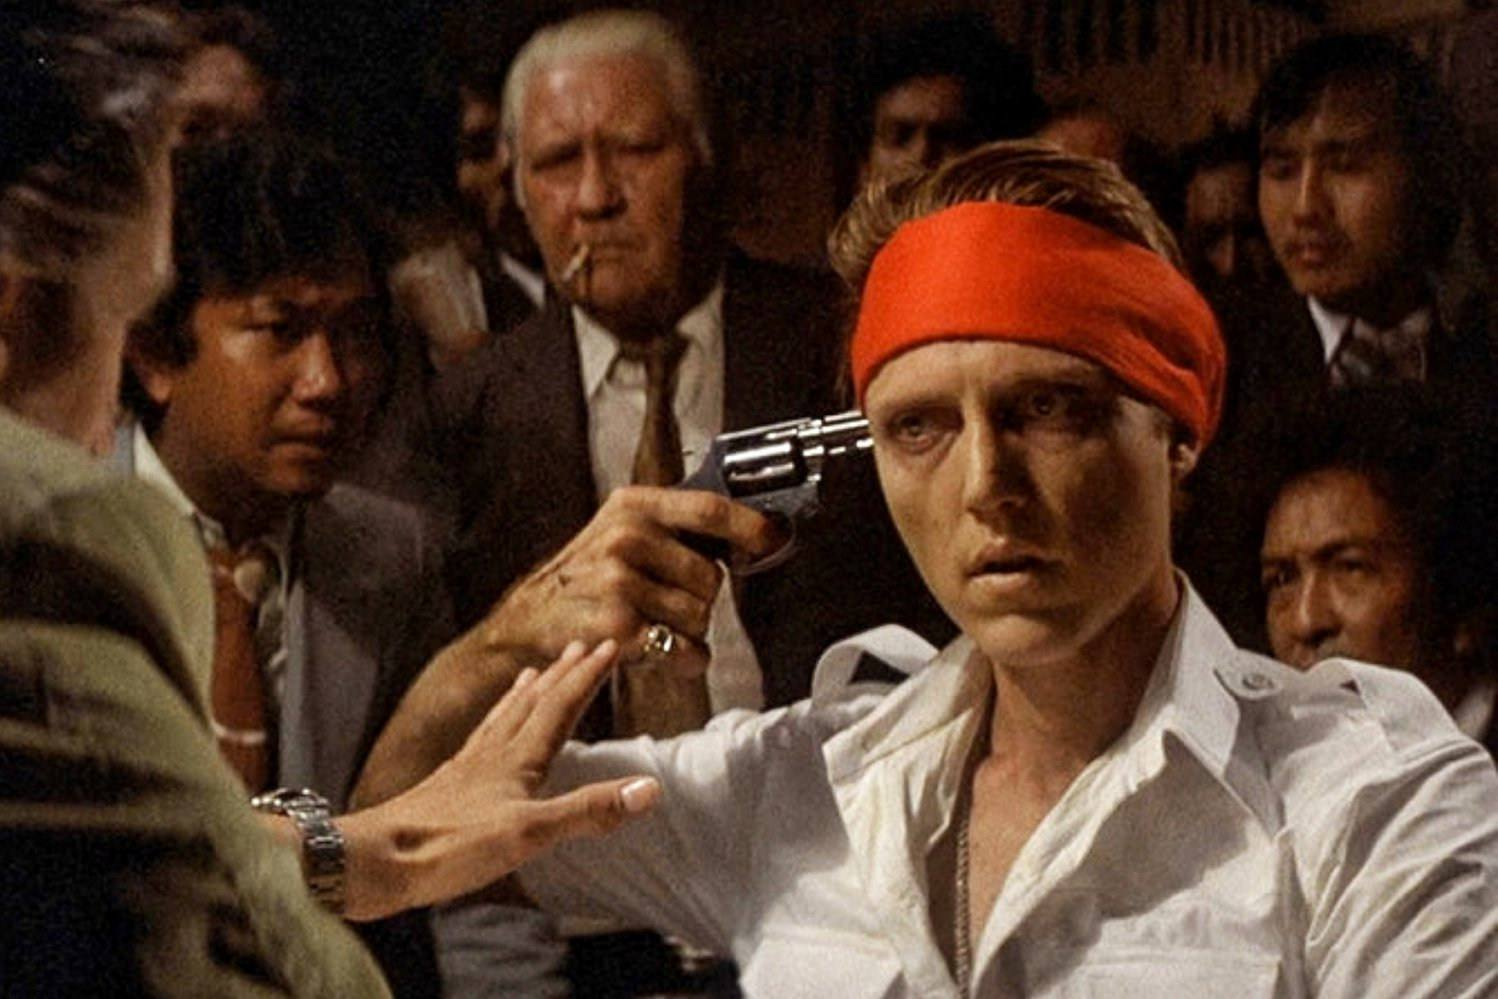 A scene from The Deer Hunter